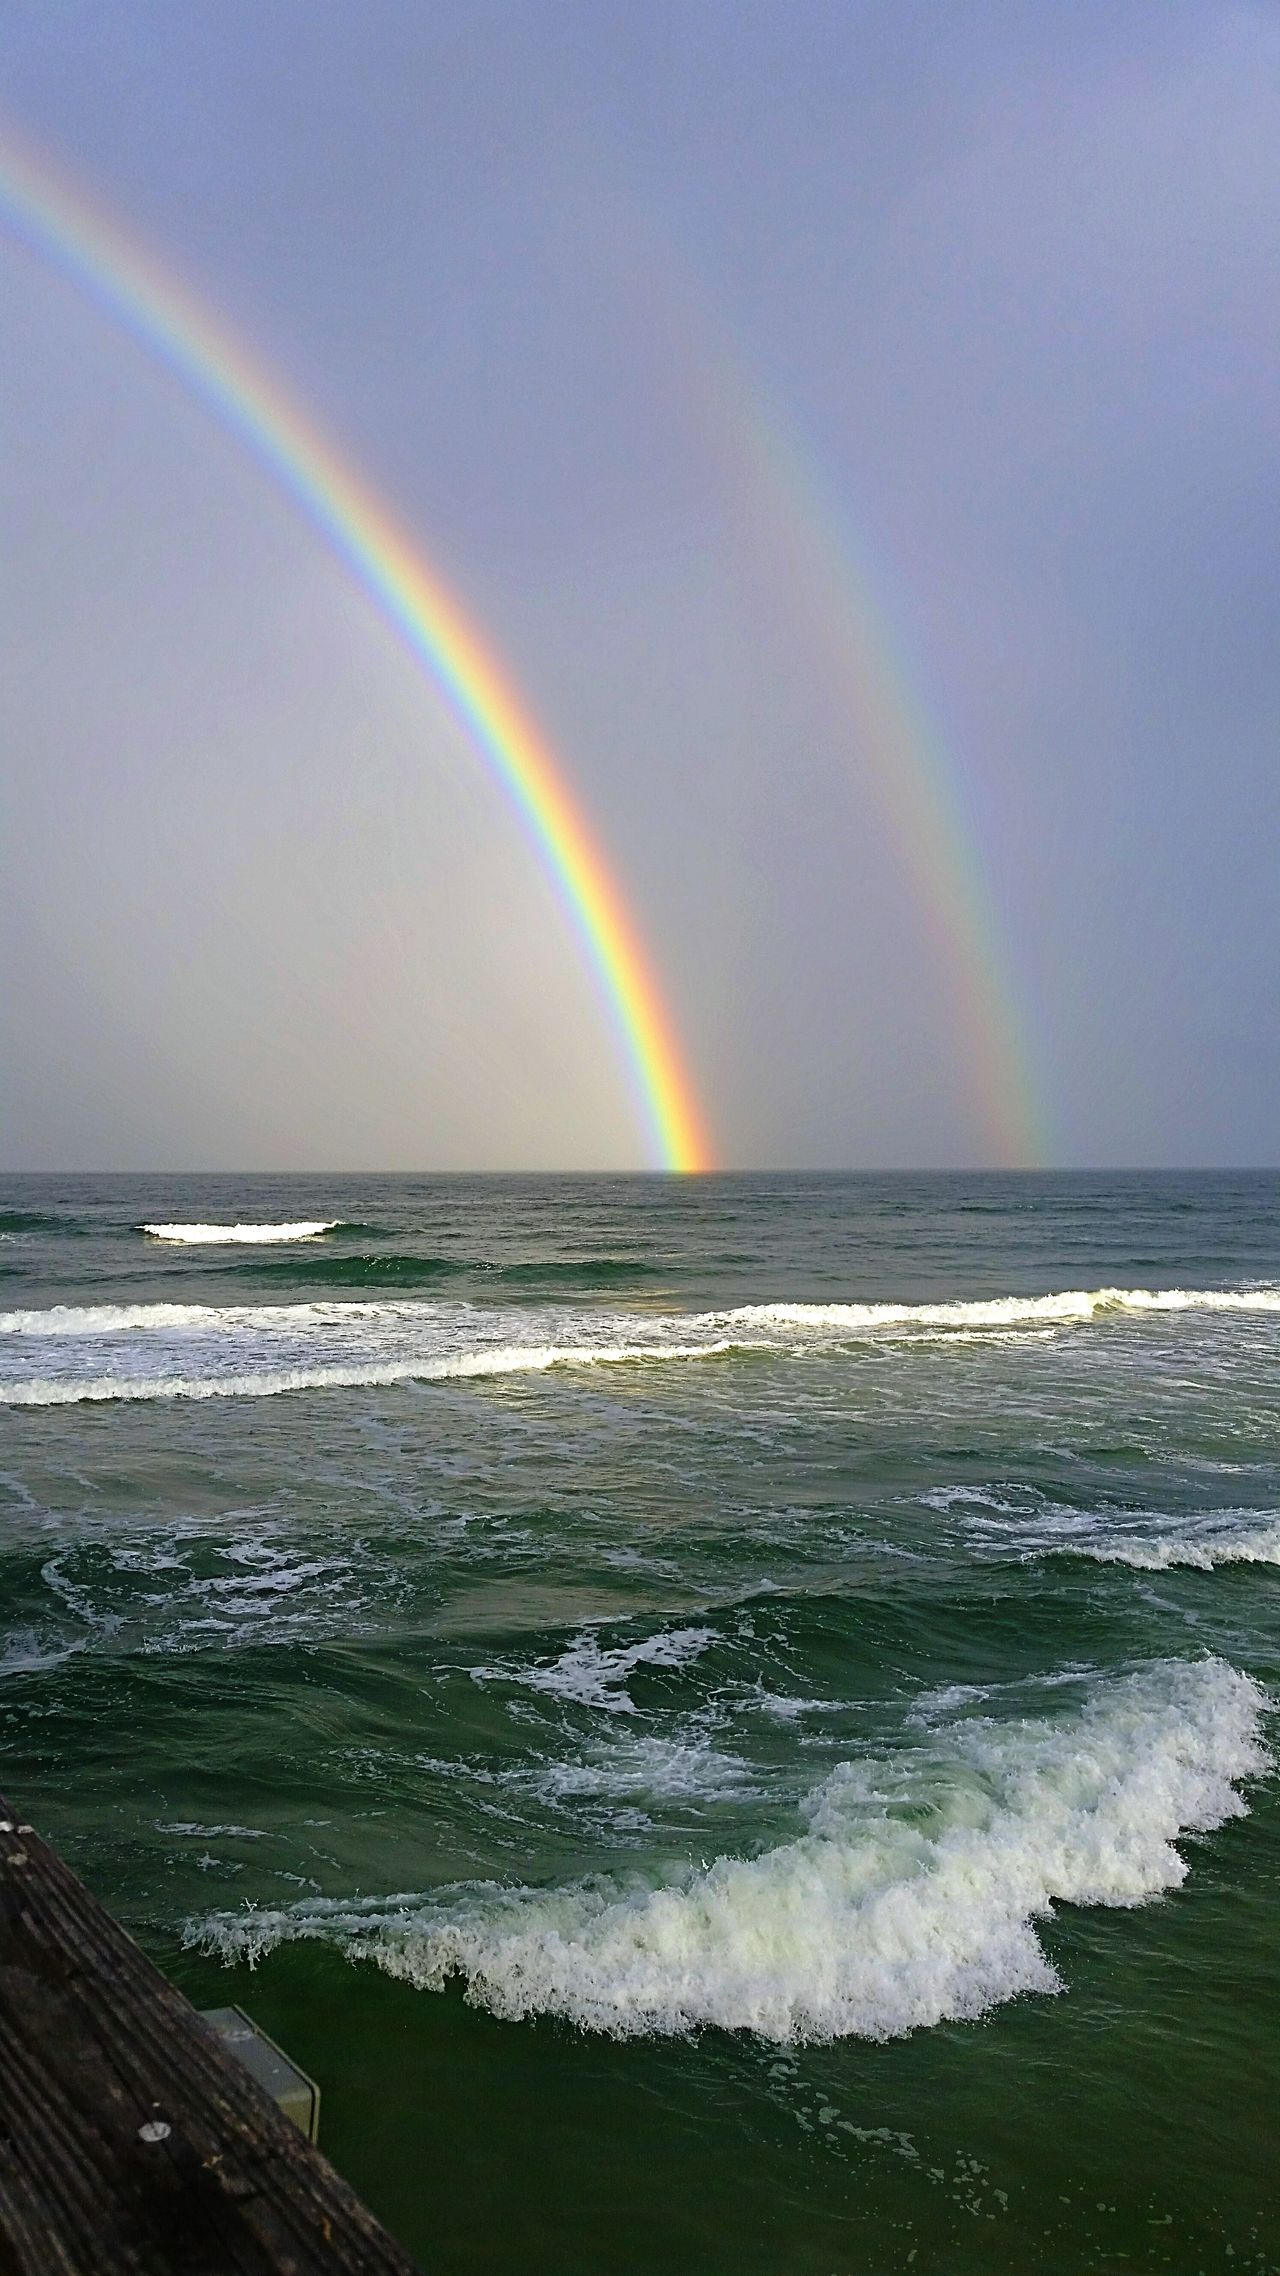 Doublerainbow Amazing Breathtaking Rainbow🌈 Beautiful ♥ Bright Colors WOW Ilovefl